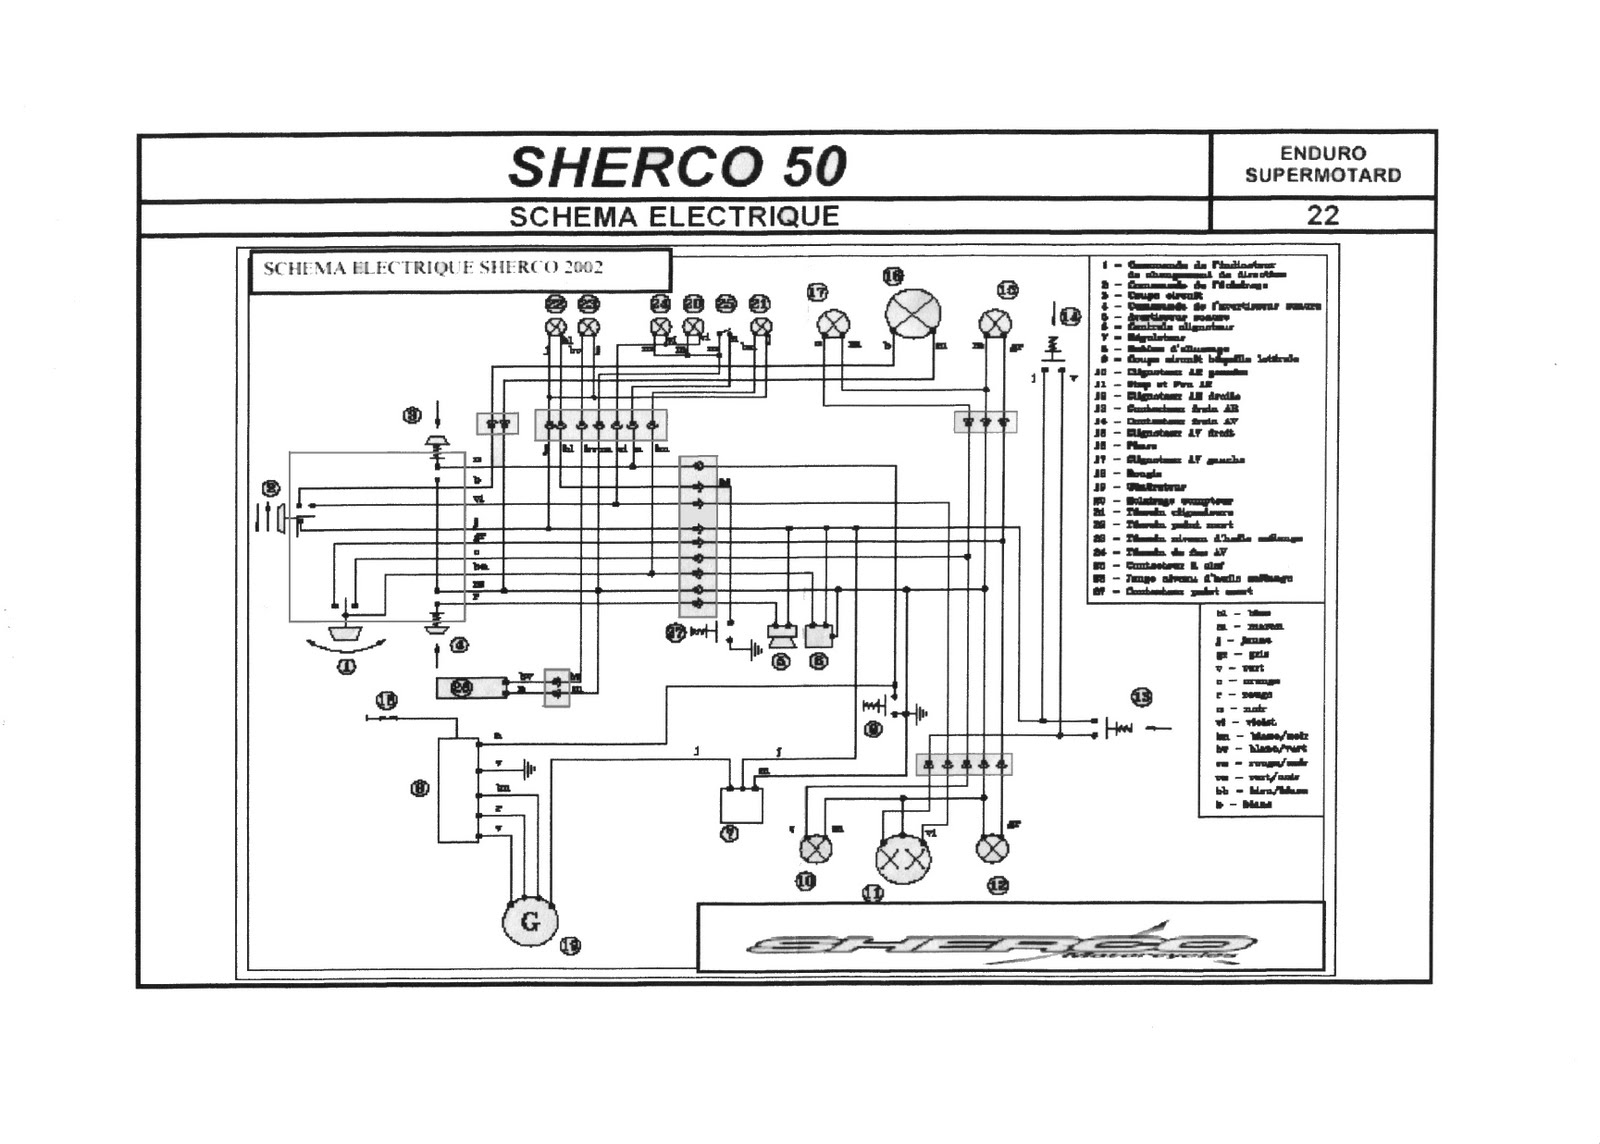 electric car  sherco schema for electric car